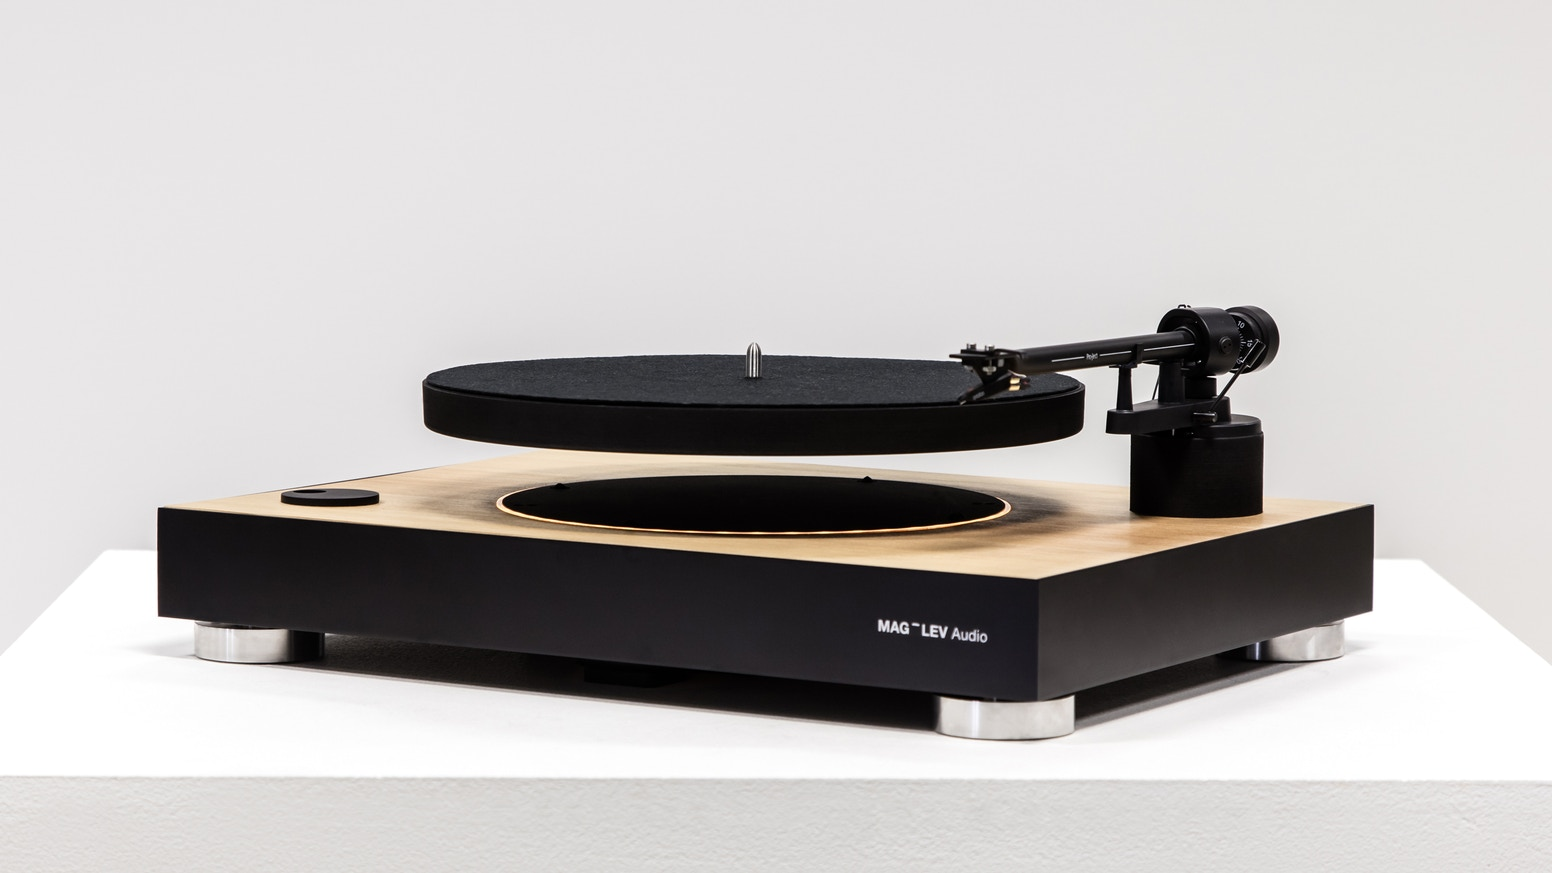 MAG-LEV Audio is The First Levitating Turntable that brings the feeling of zero gravity into your living room.